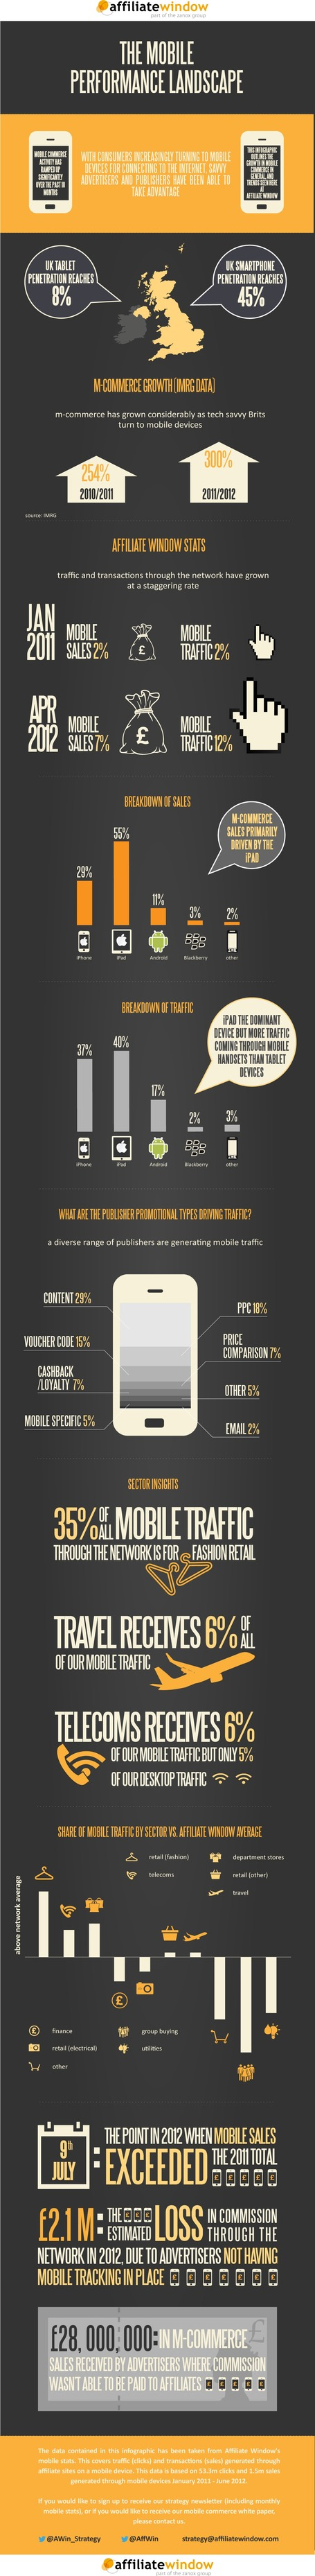 MCommerce Is All About The Pad [infographic] | BI Revolution | Scoop.it